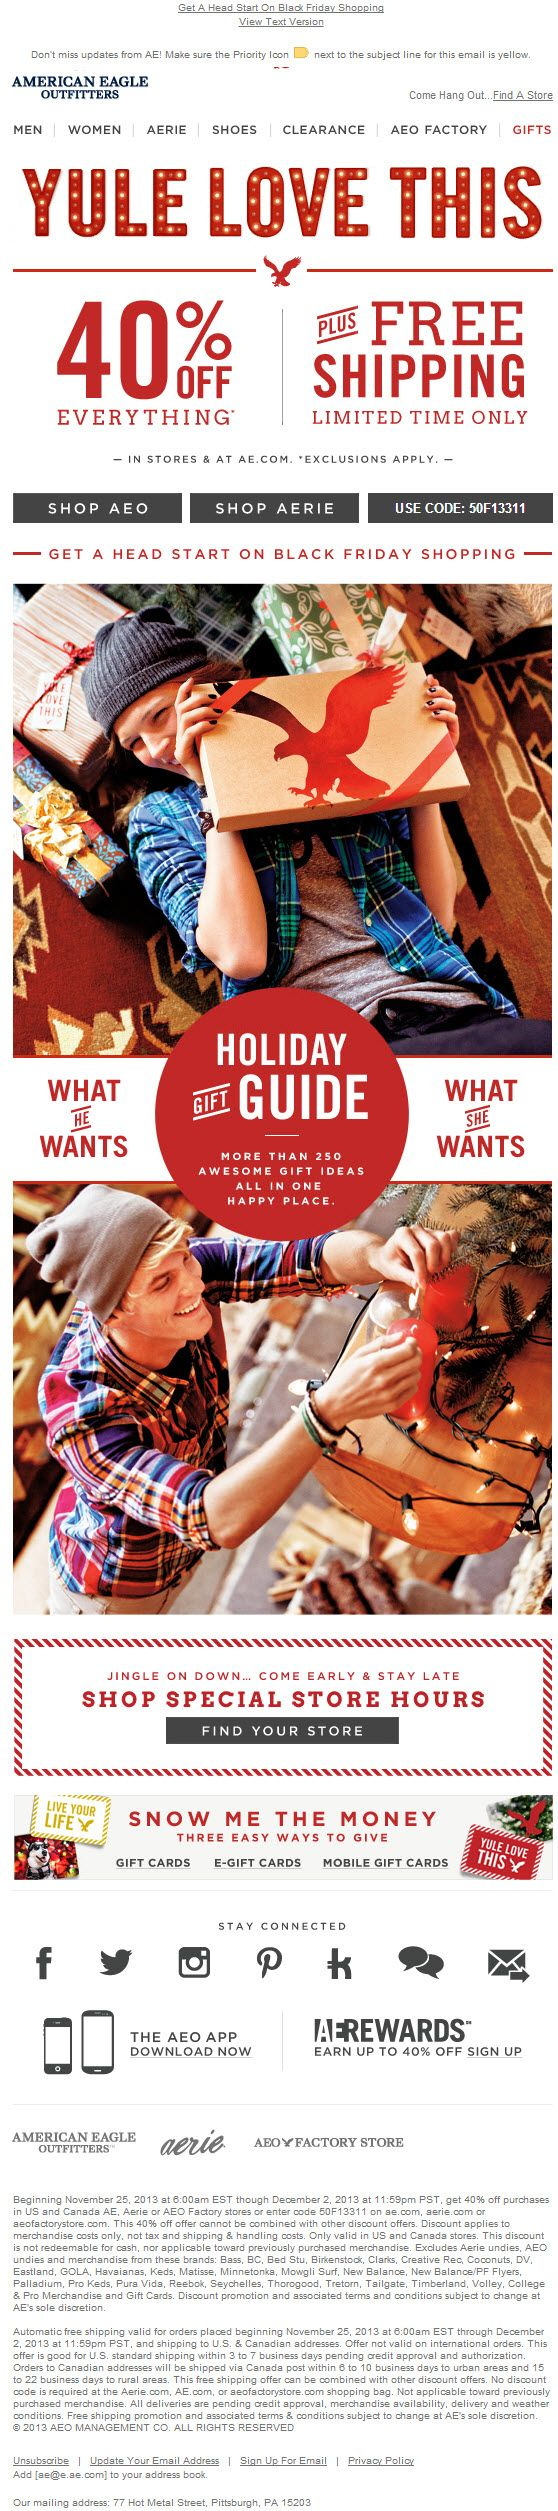 Sent: 11/25/13 SL: '40% Off + Free Shipping...The Cheer Starts Now!' Holiday Gift Guide email from American Eagle with a great call out for Black Friday store hours and Gift Cards